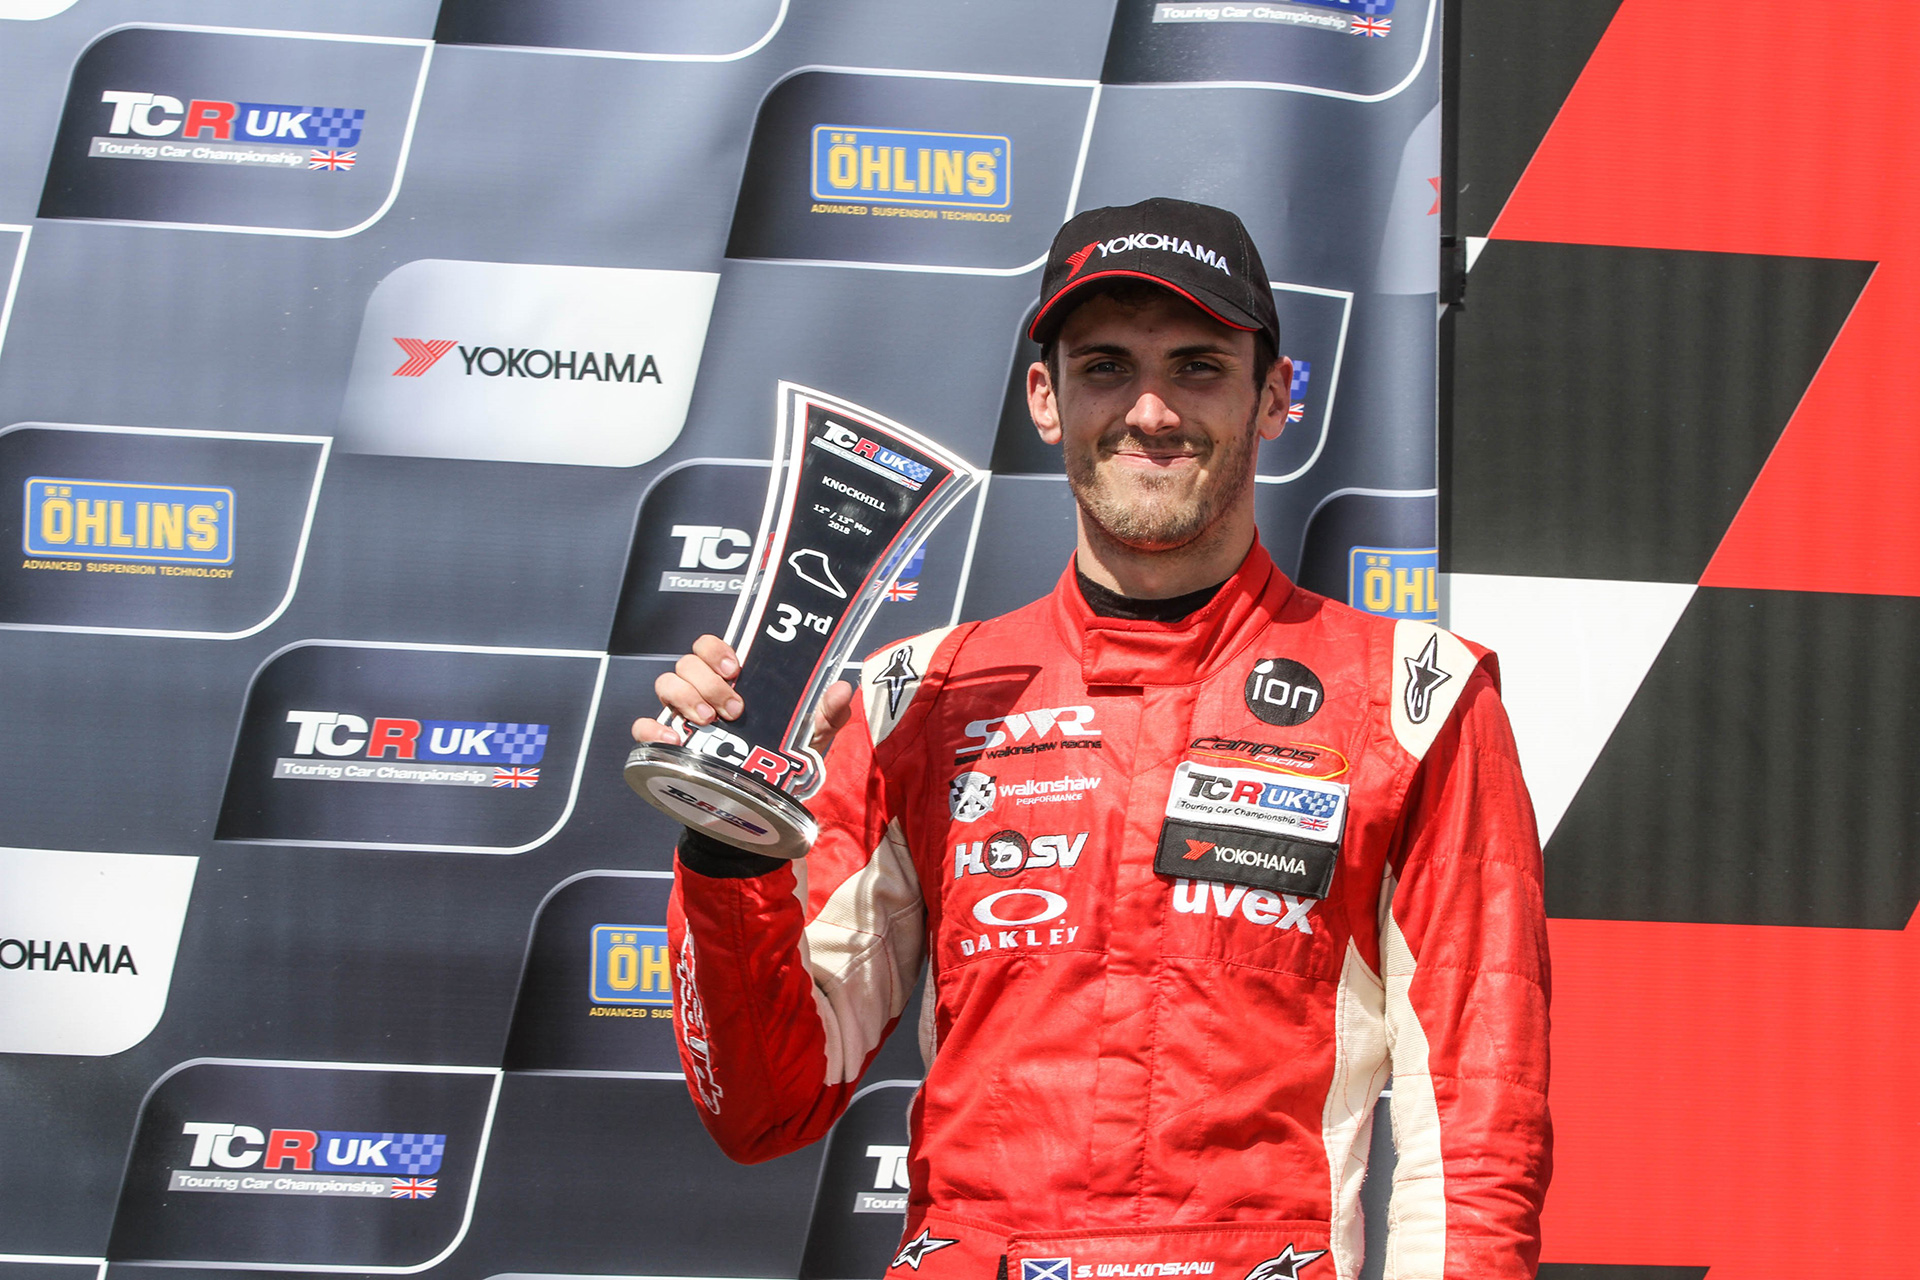 First podium of inaugural TCR UK Championship season for SWR.